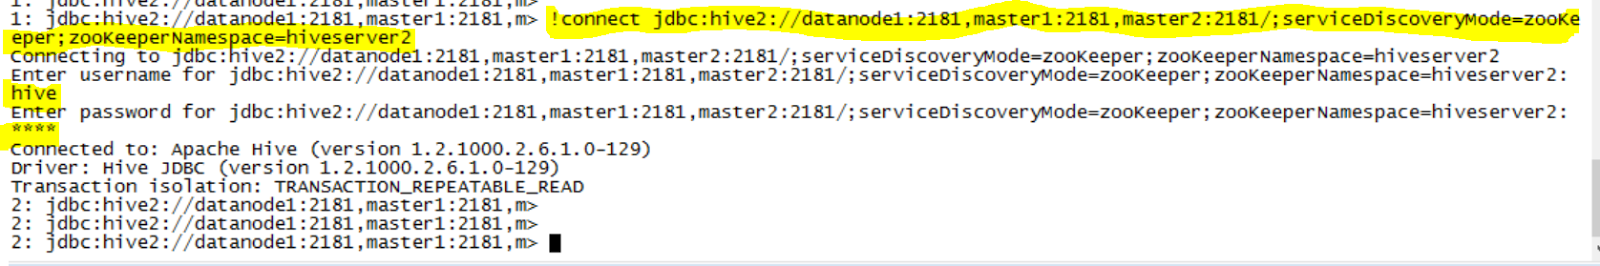 Hadoop Lessons: Connecting to Hive database with dynamic